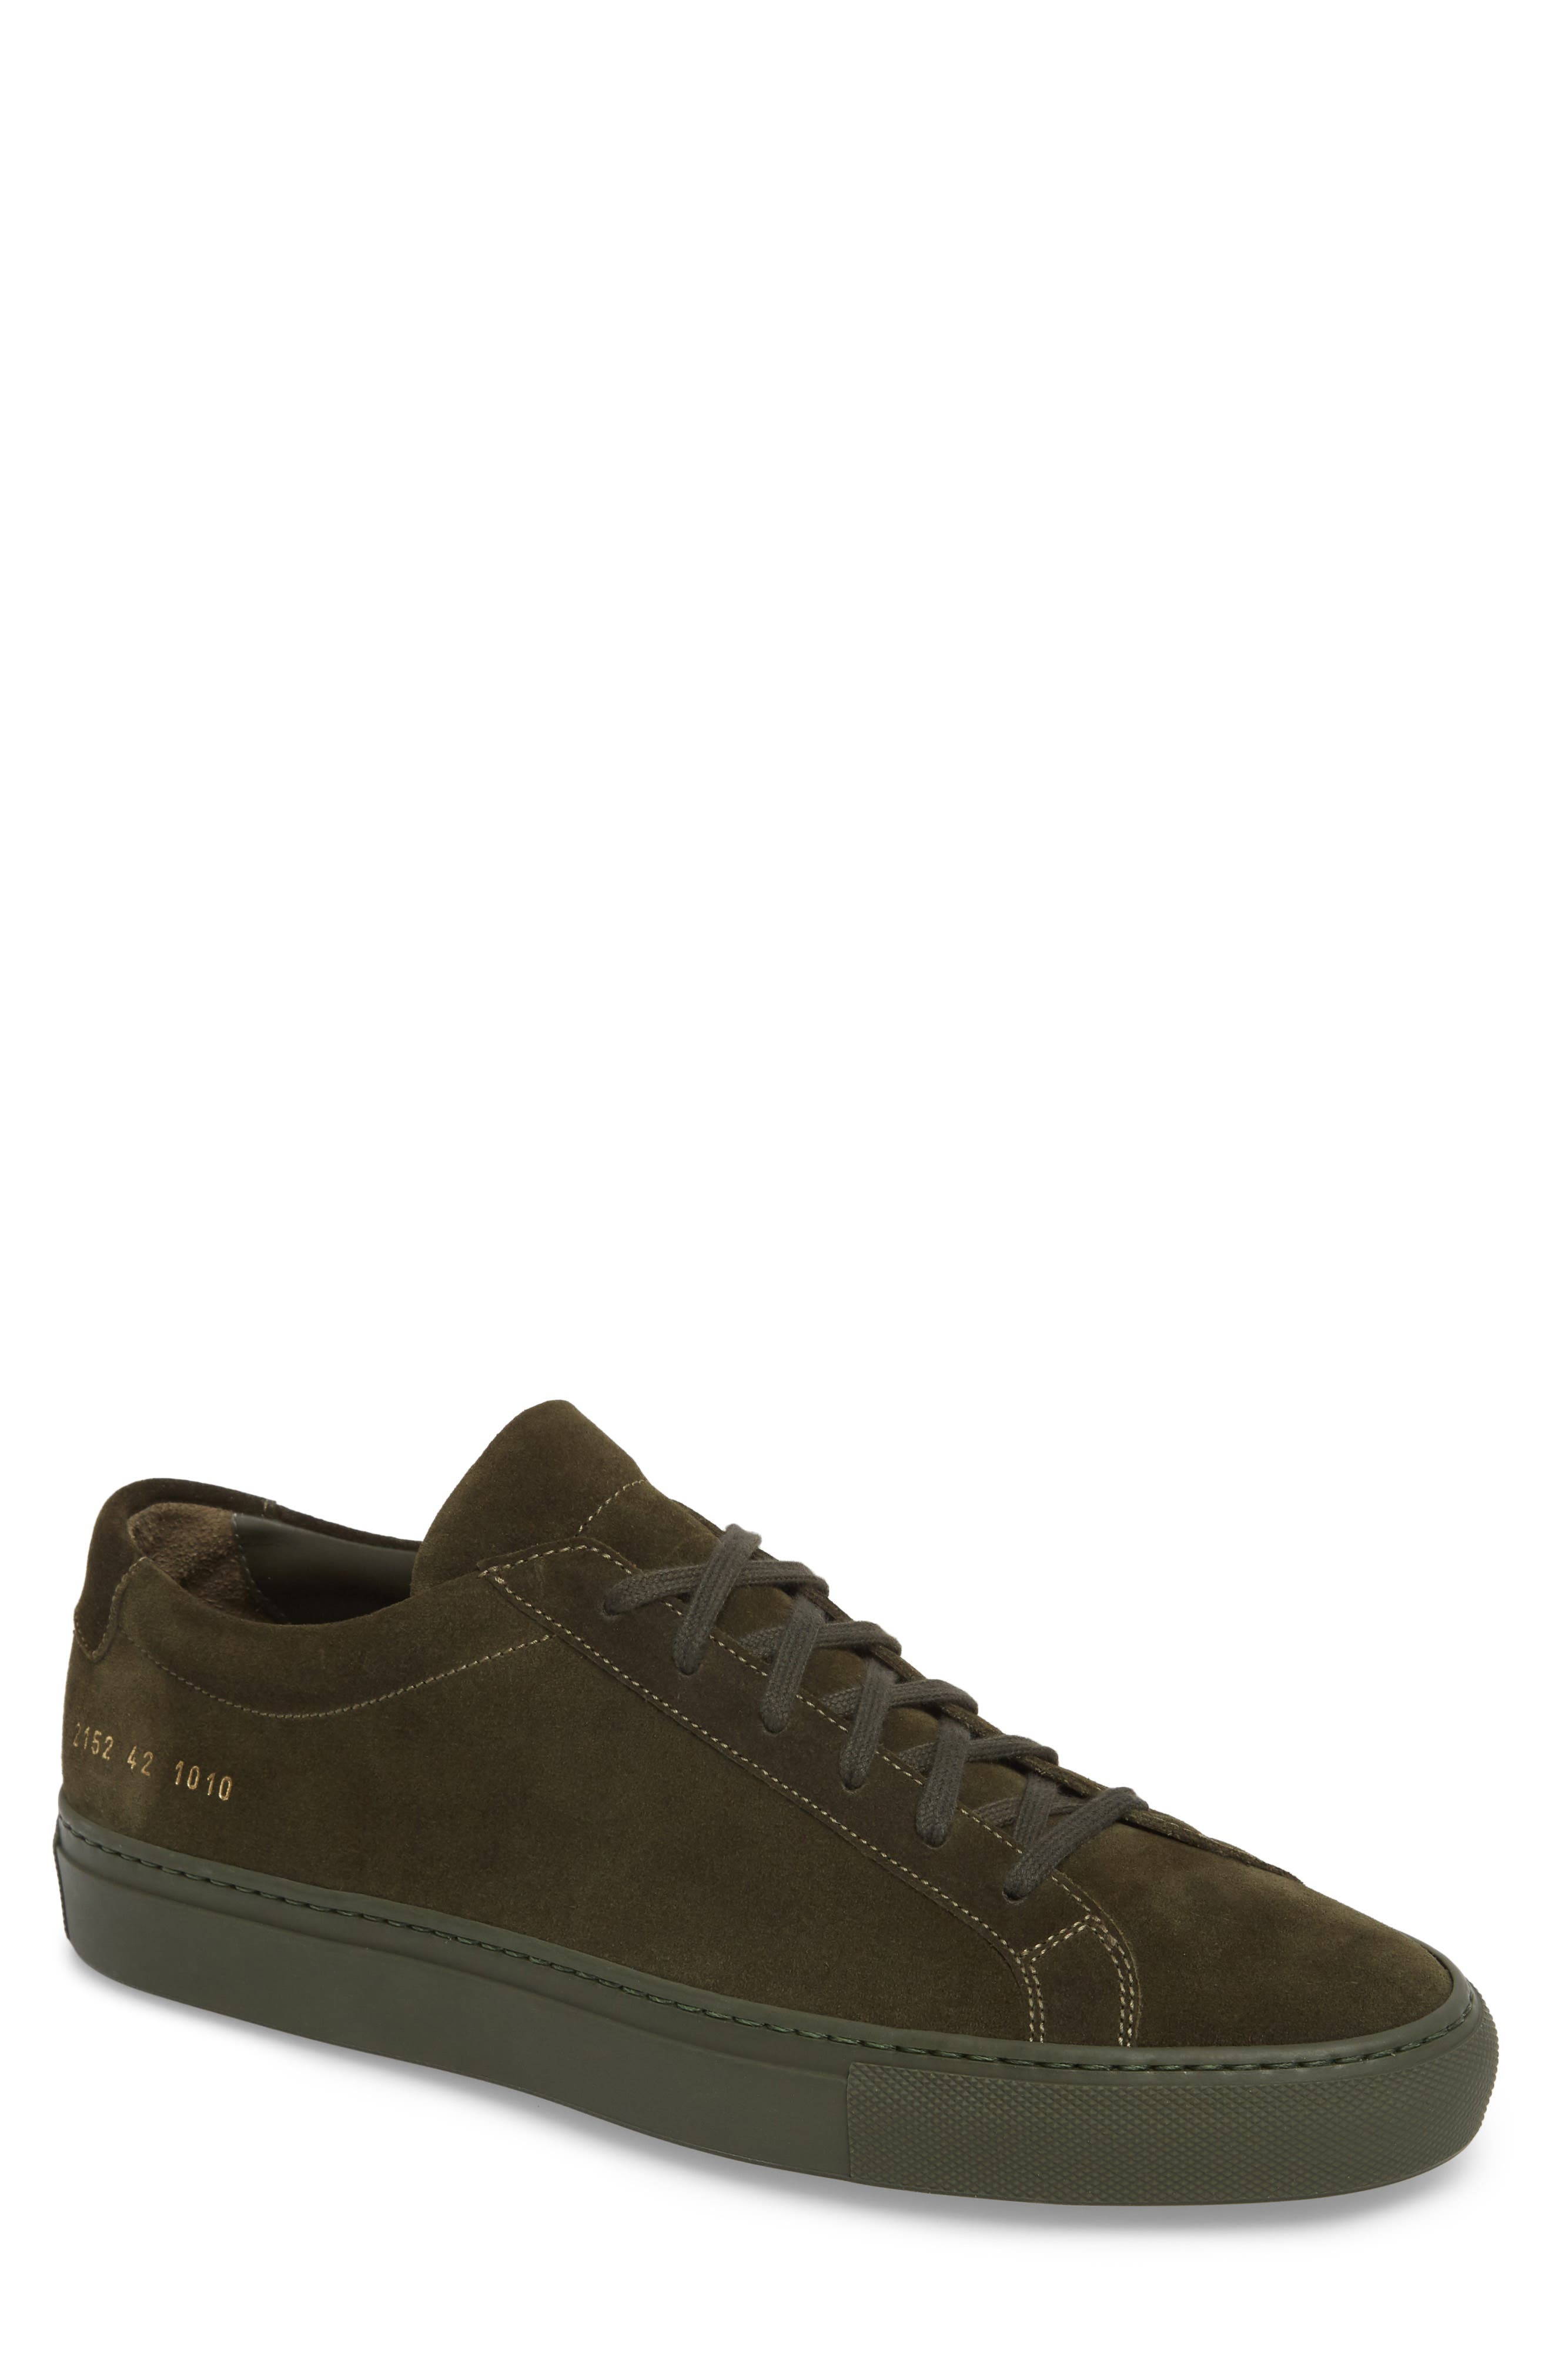 COMMON PROJECTS ORIGINAL ACHILLES LOW TOP SNEAKER